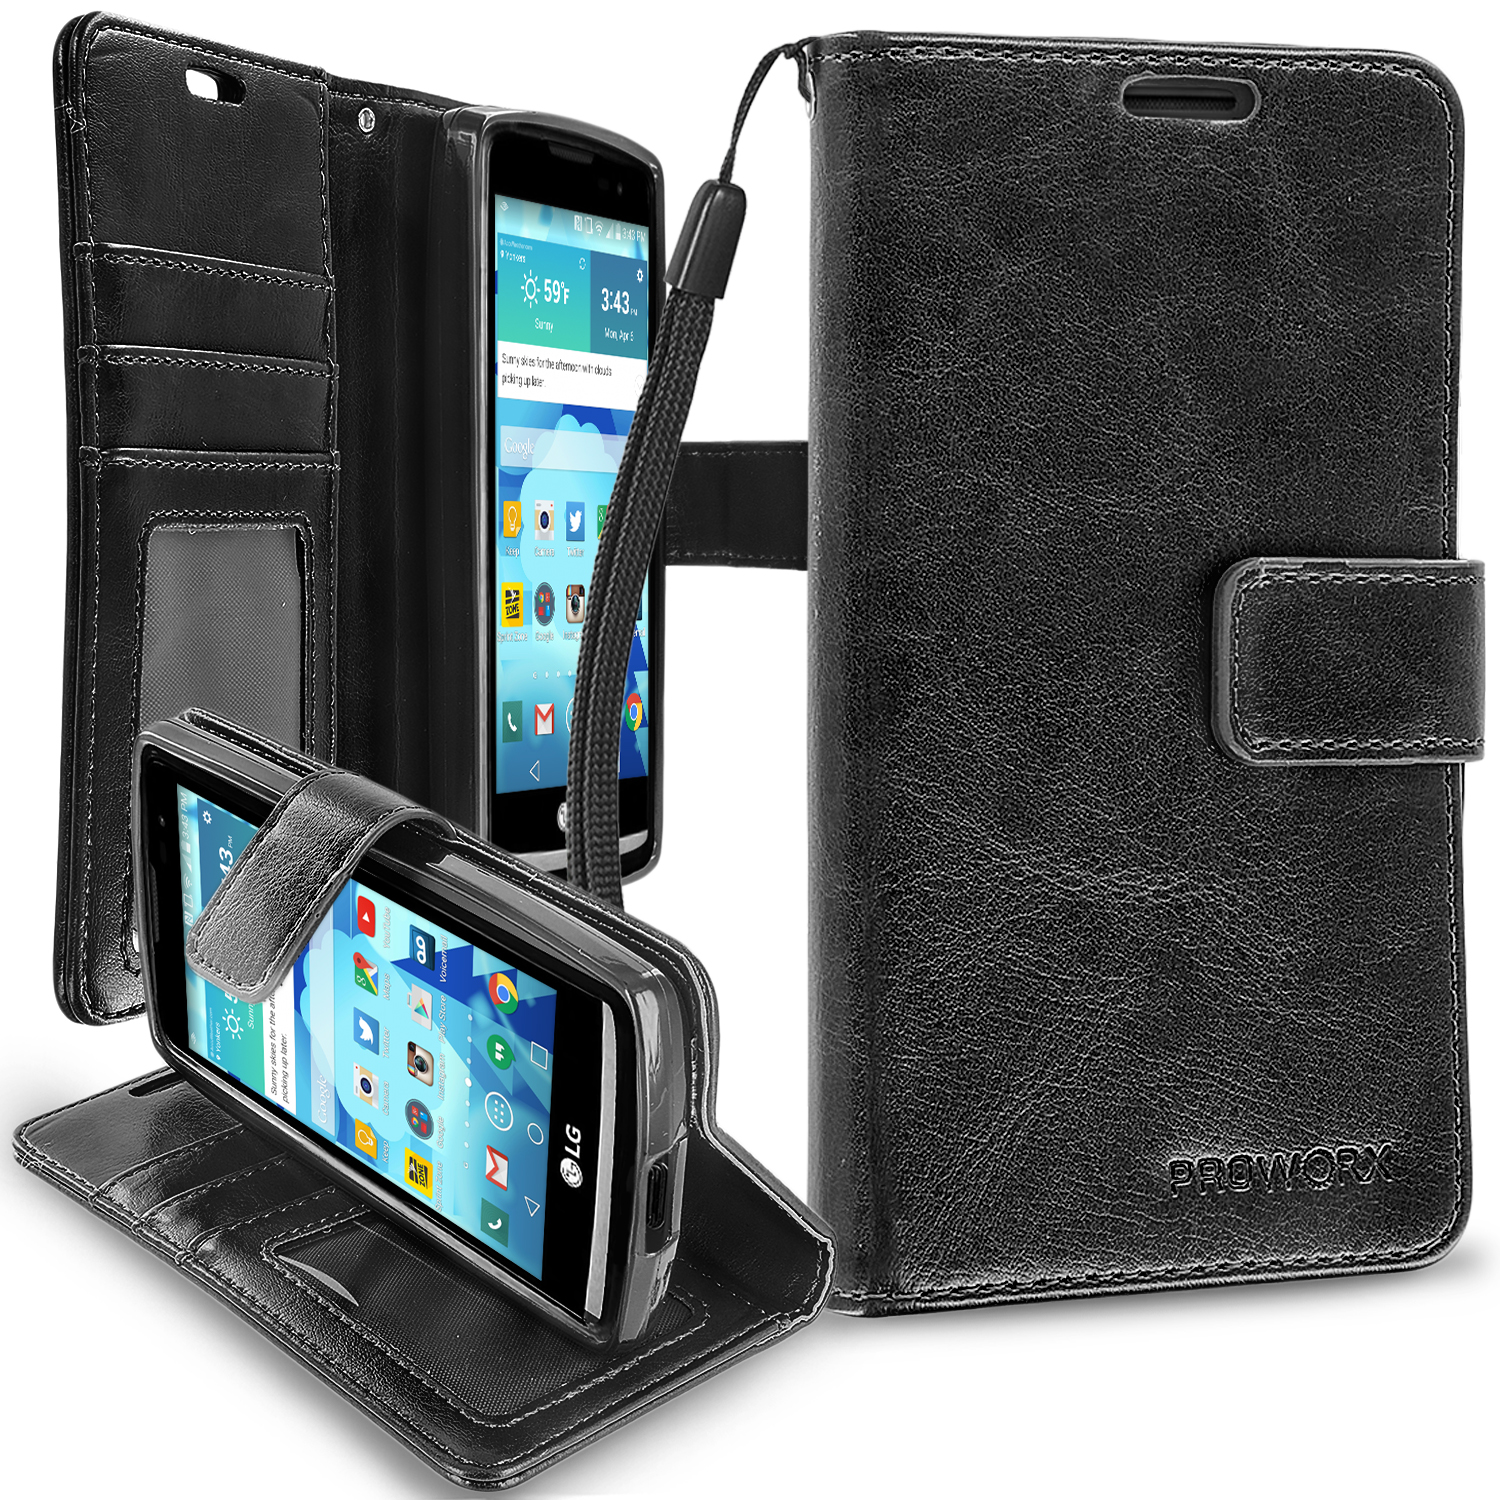 LG Tribute 2 Leon Power Destiny Black ProWorx Wallet Case Luxury PU Leather Case Cover With Card Slots & Stand